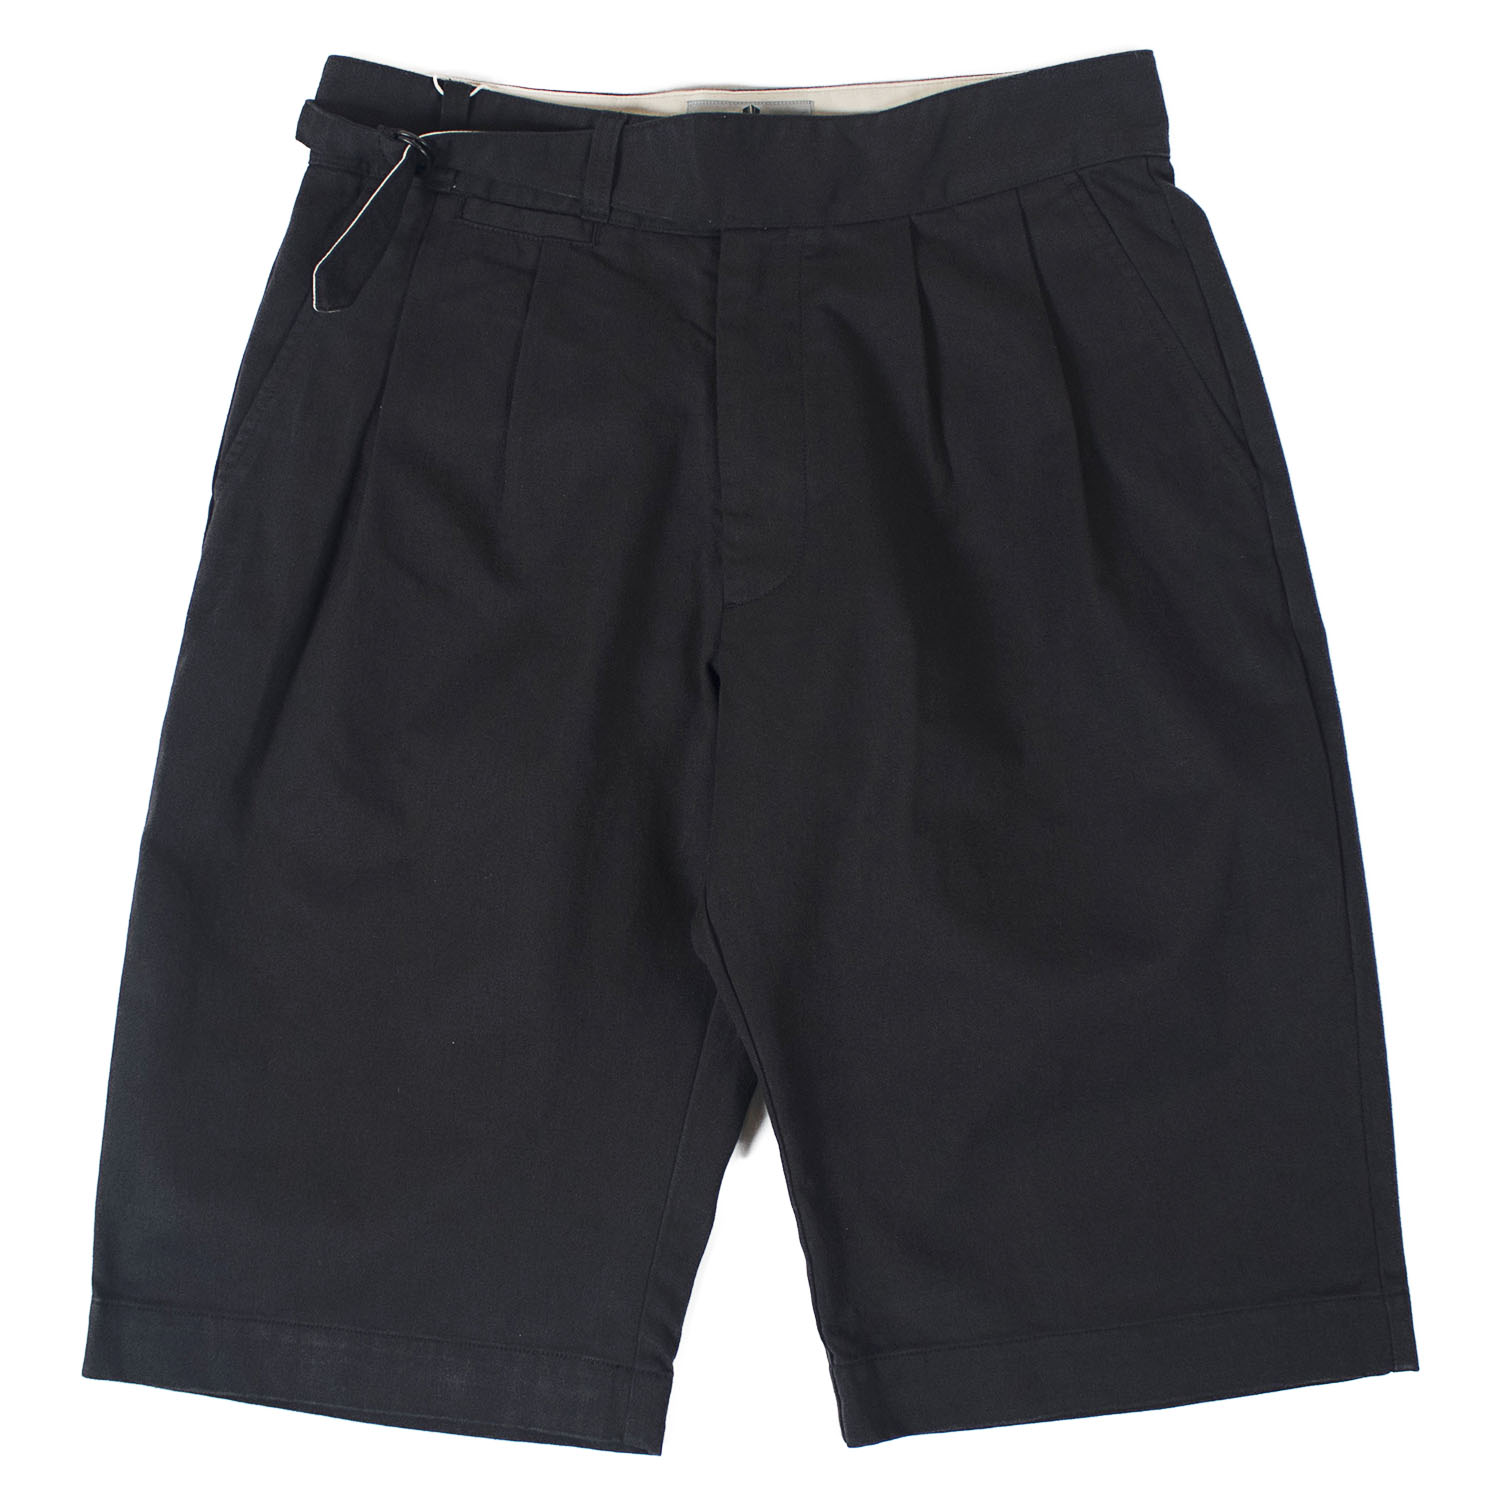 BHR Summer Half pants (Black)